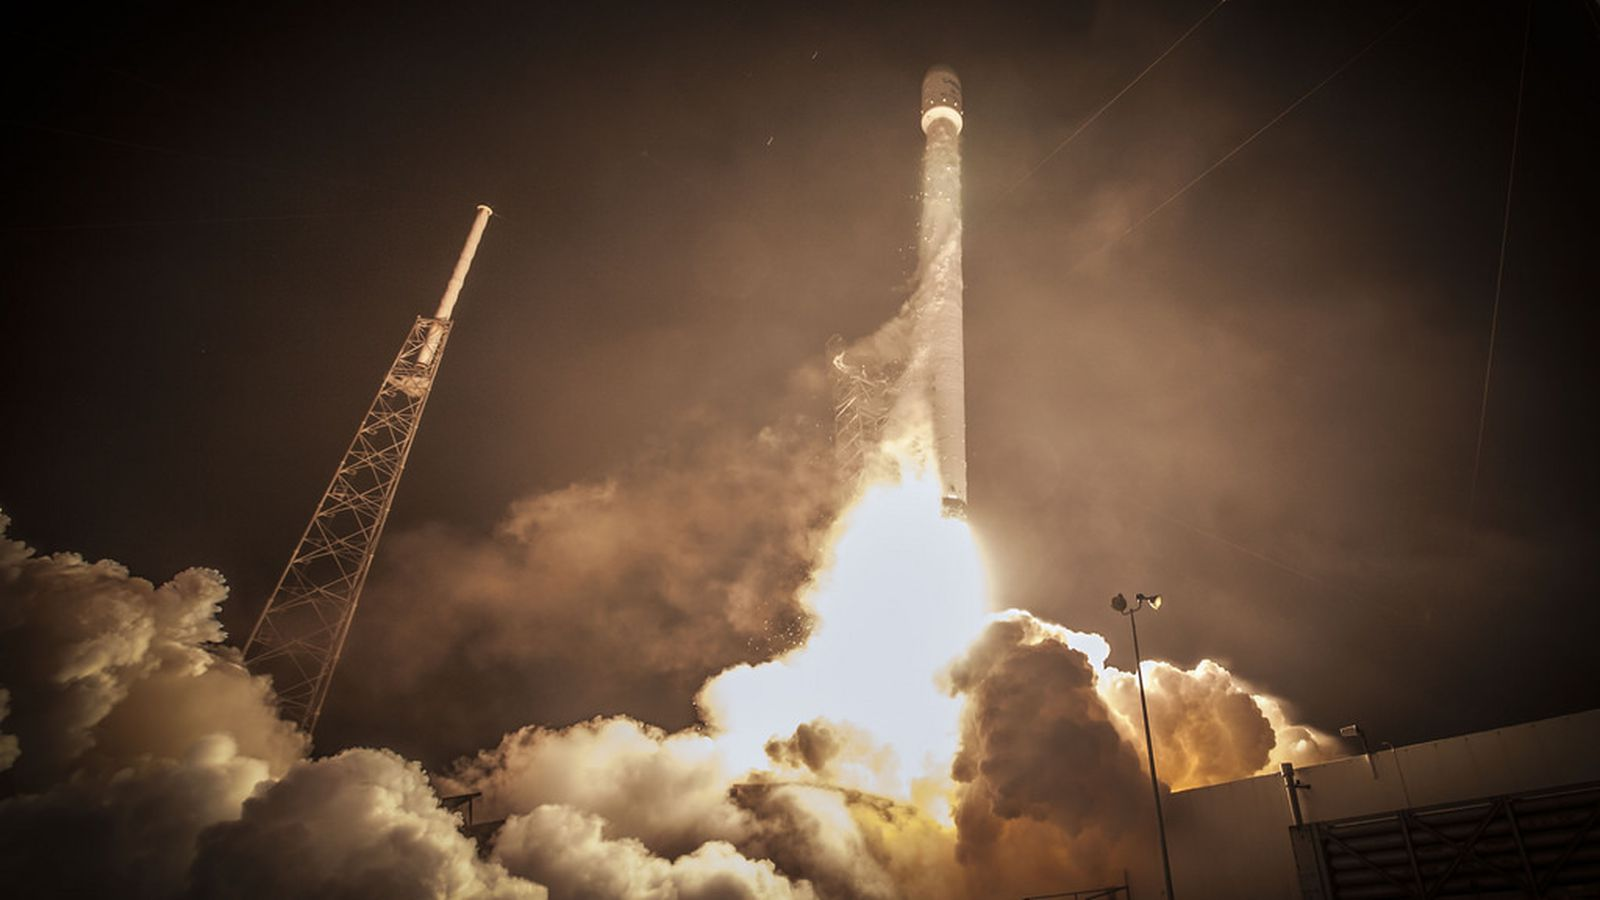 spacex follows nasa by publishing images without copyright